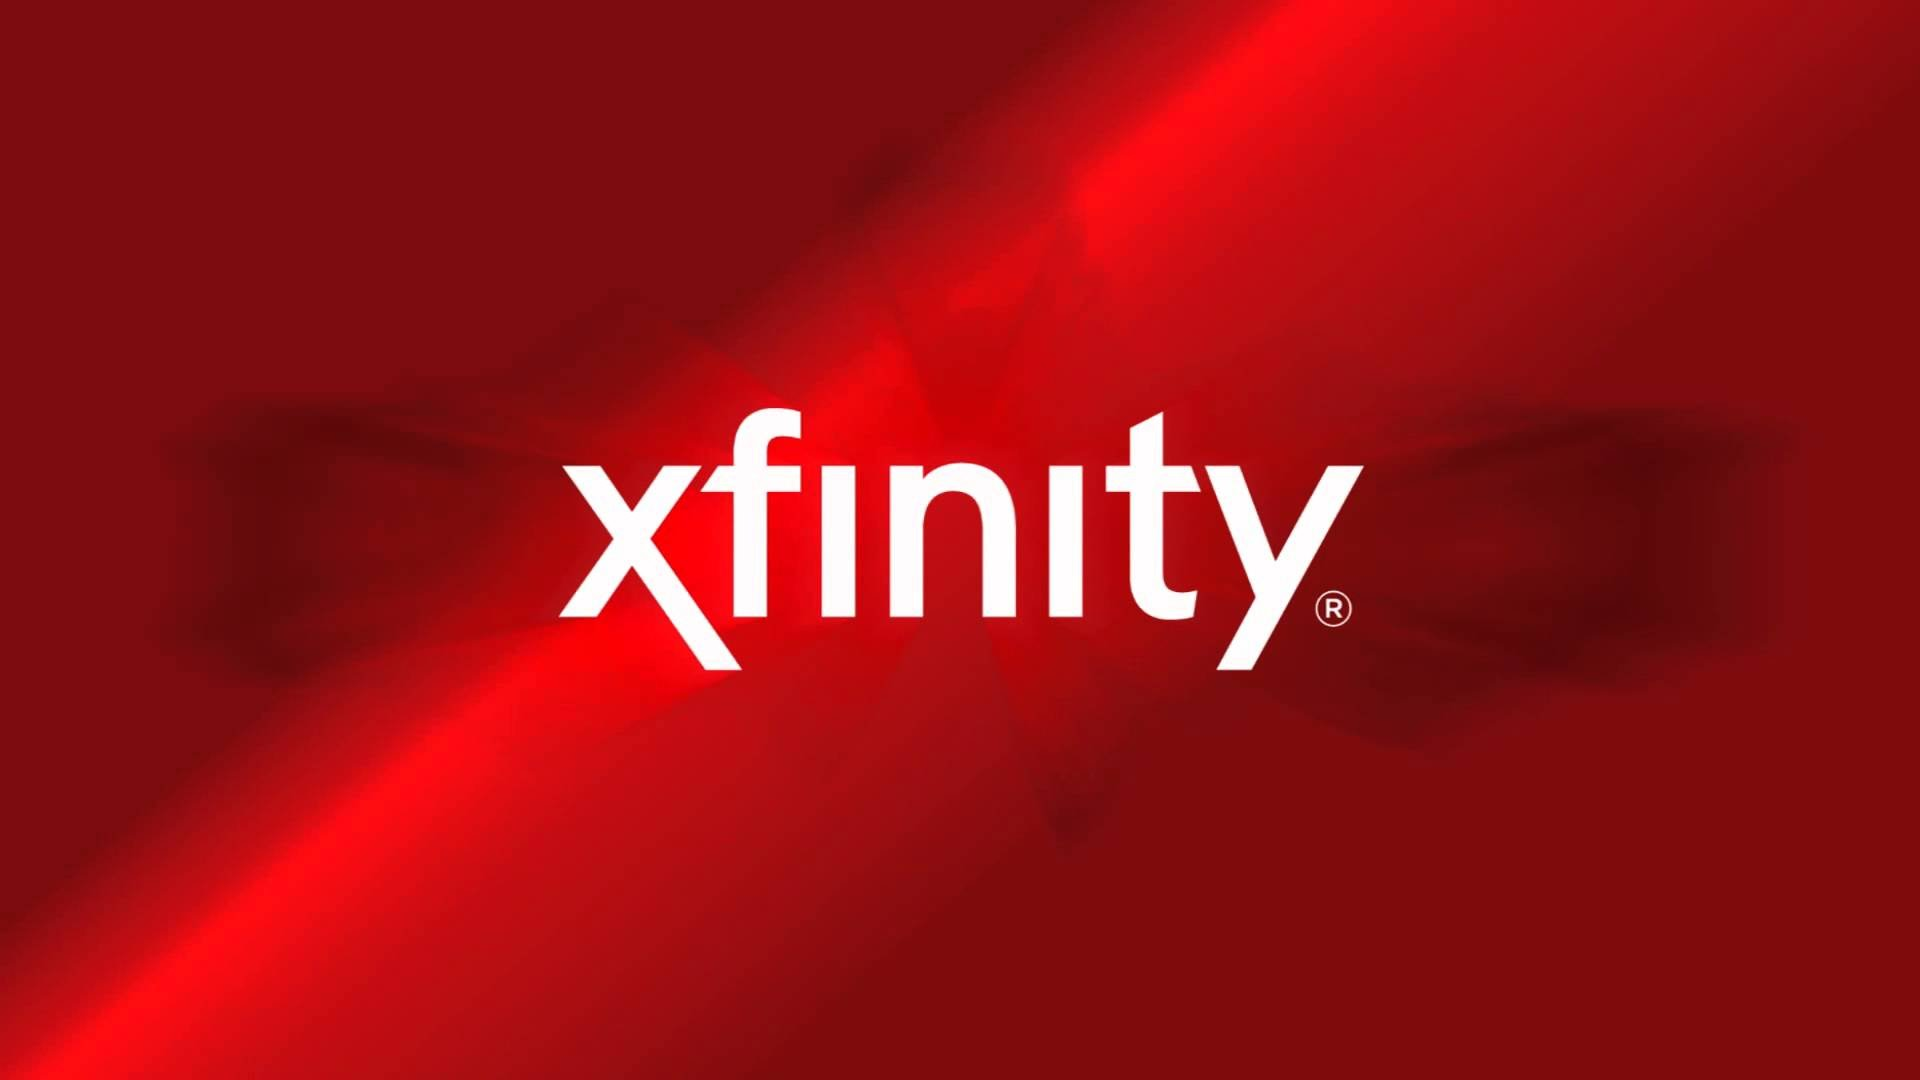 PSA: Security flaws exposed partial addresses & social security numbers of 26M Comcast users